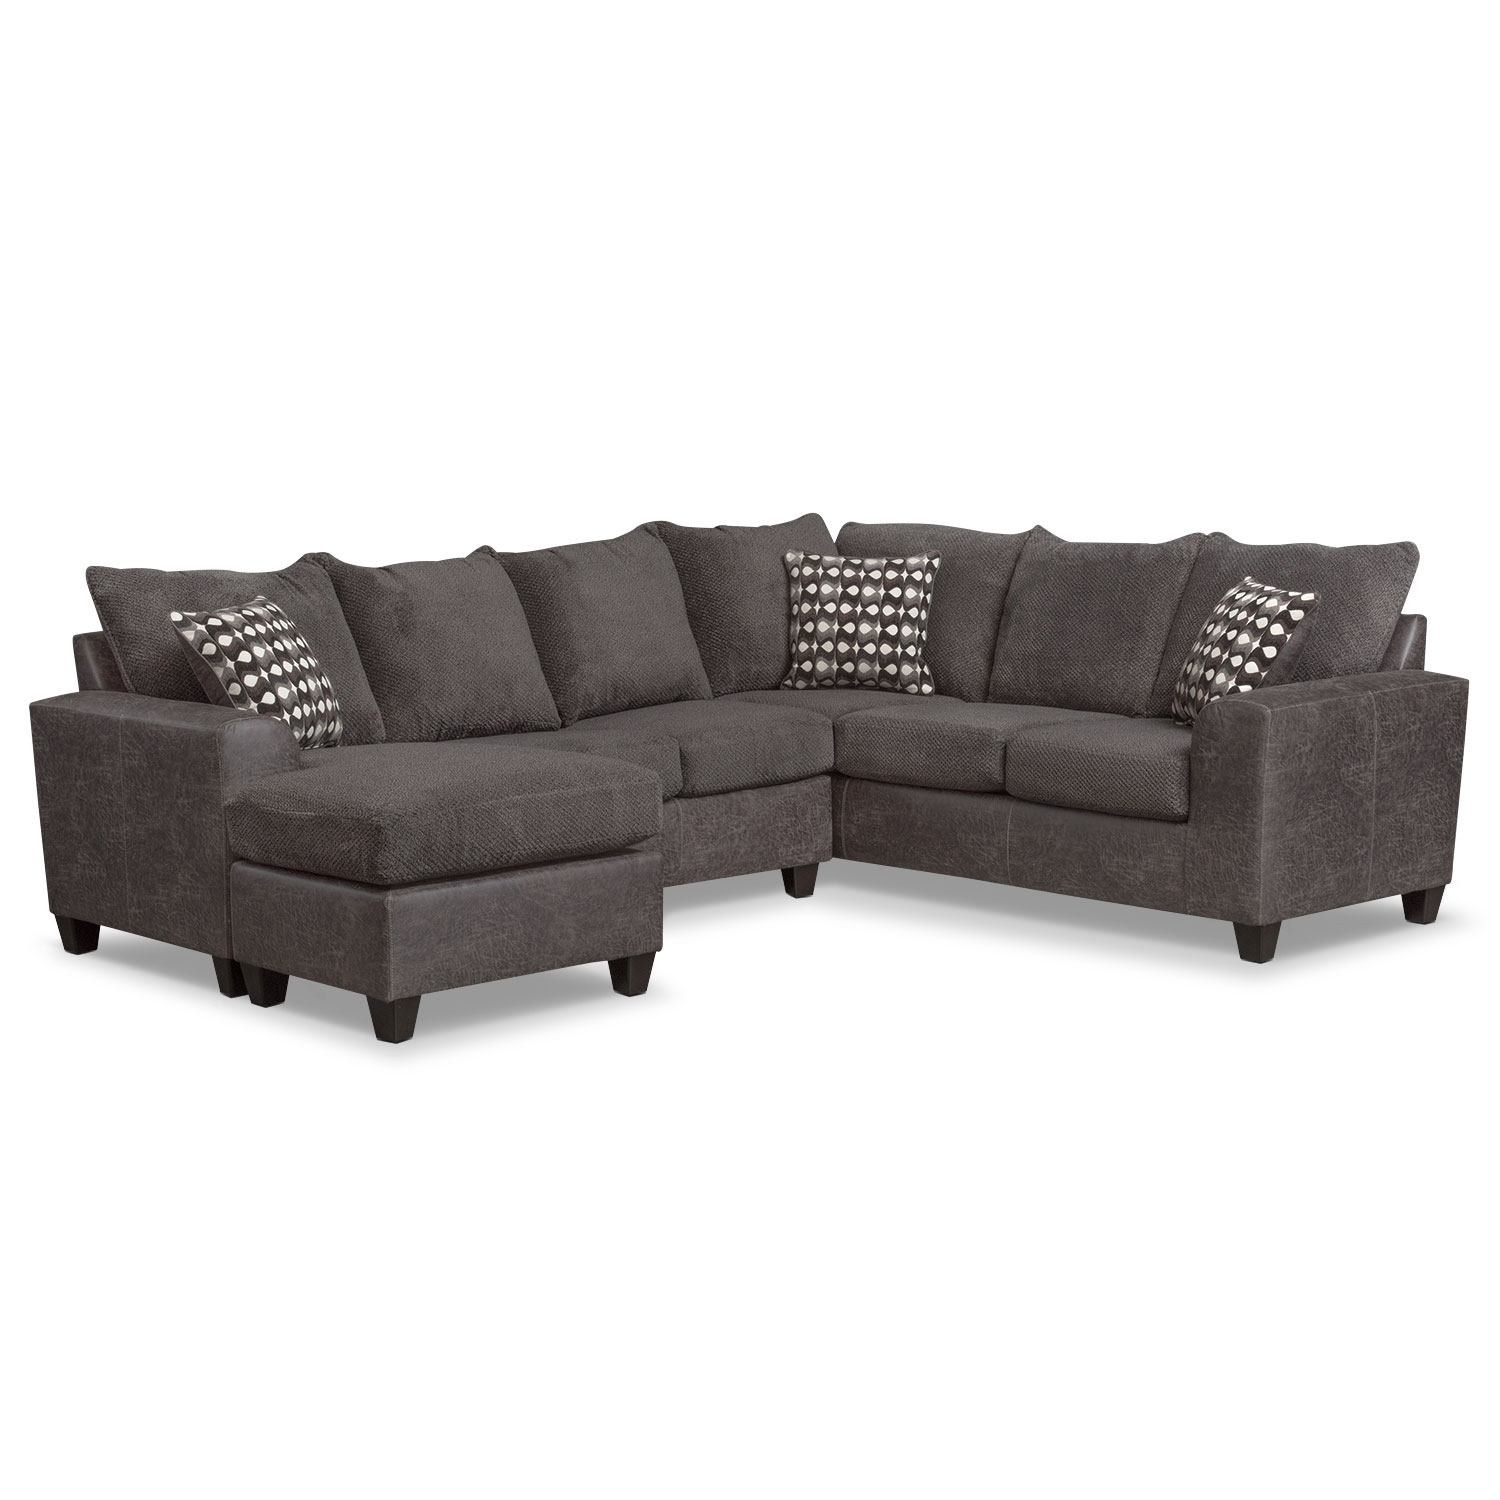 Brando 3 Piece Sectional With Modular Chaise – Smoke | Value City Regarding Value City Sectional Sofas (View 7 of 10)